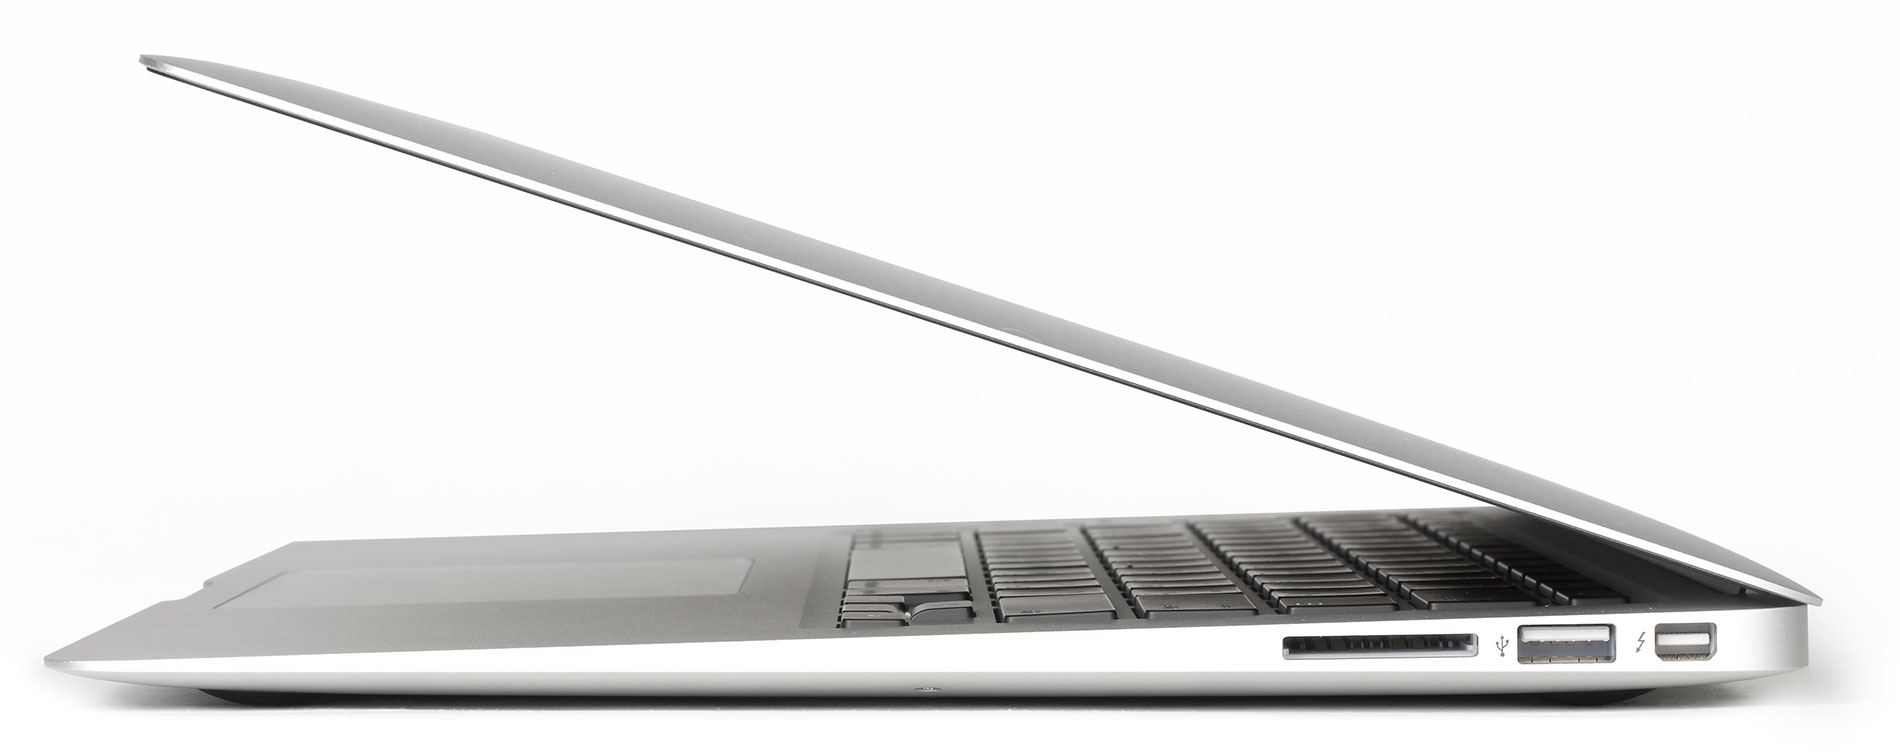 MD760B MACBOOK Early 2014